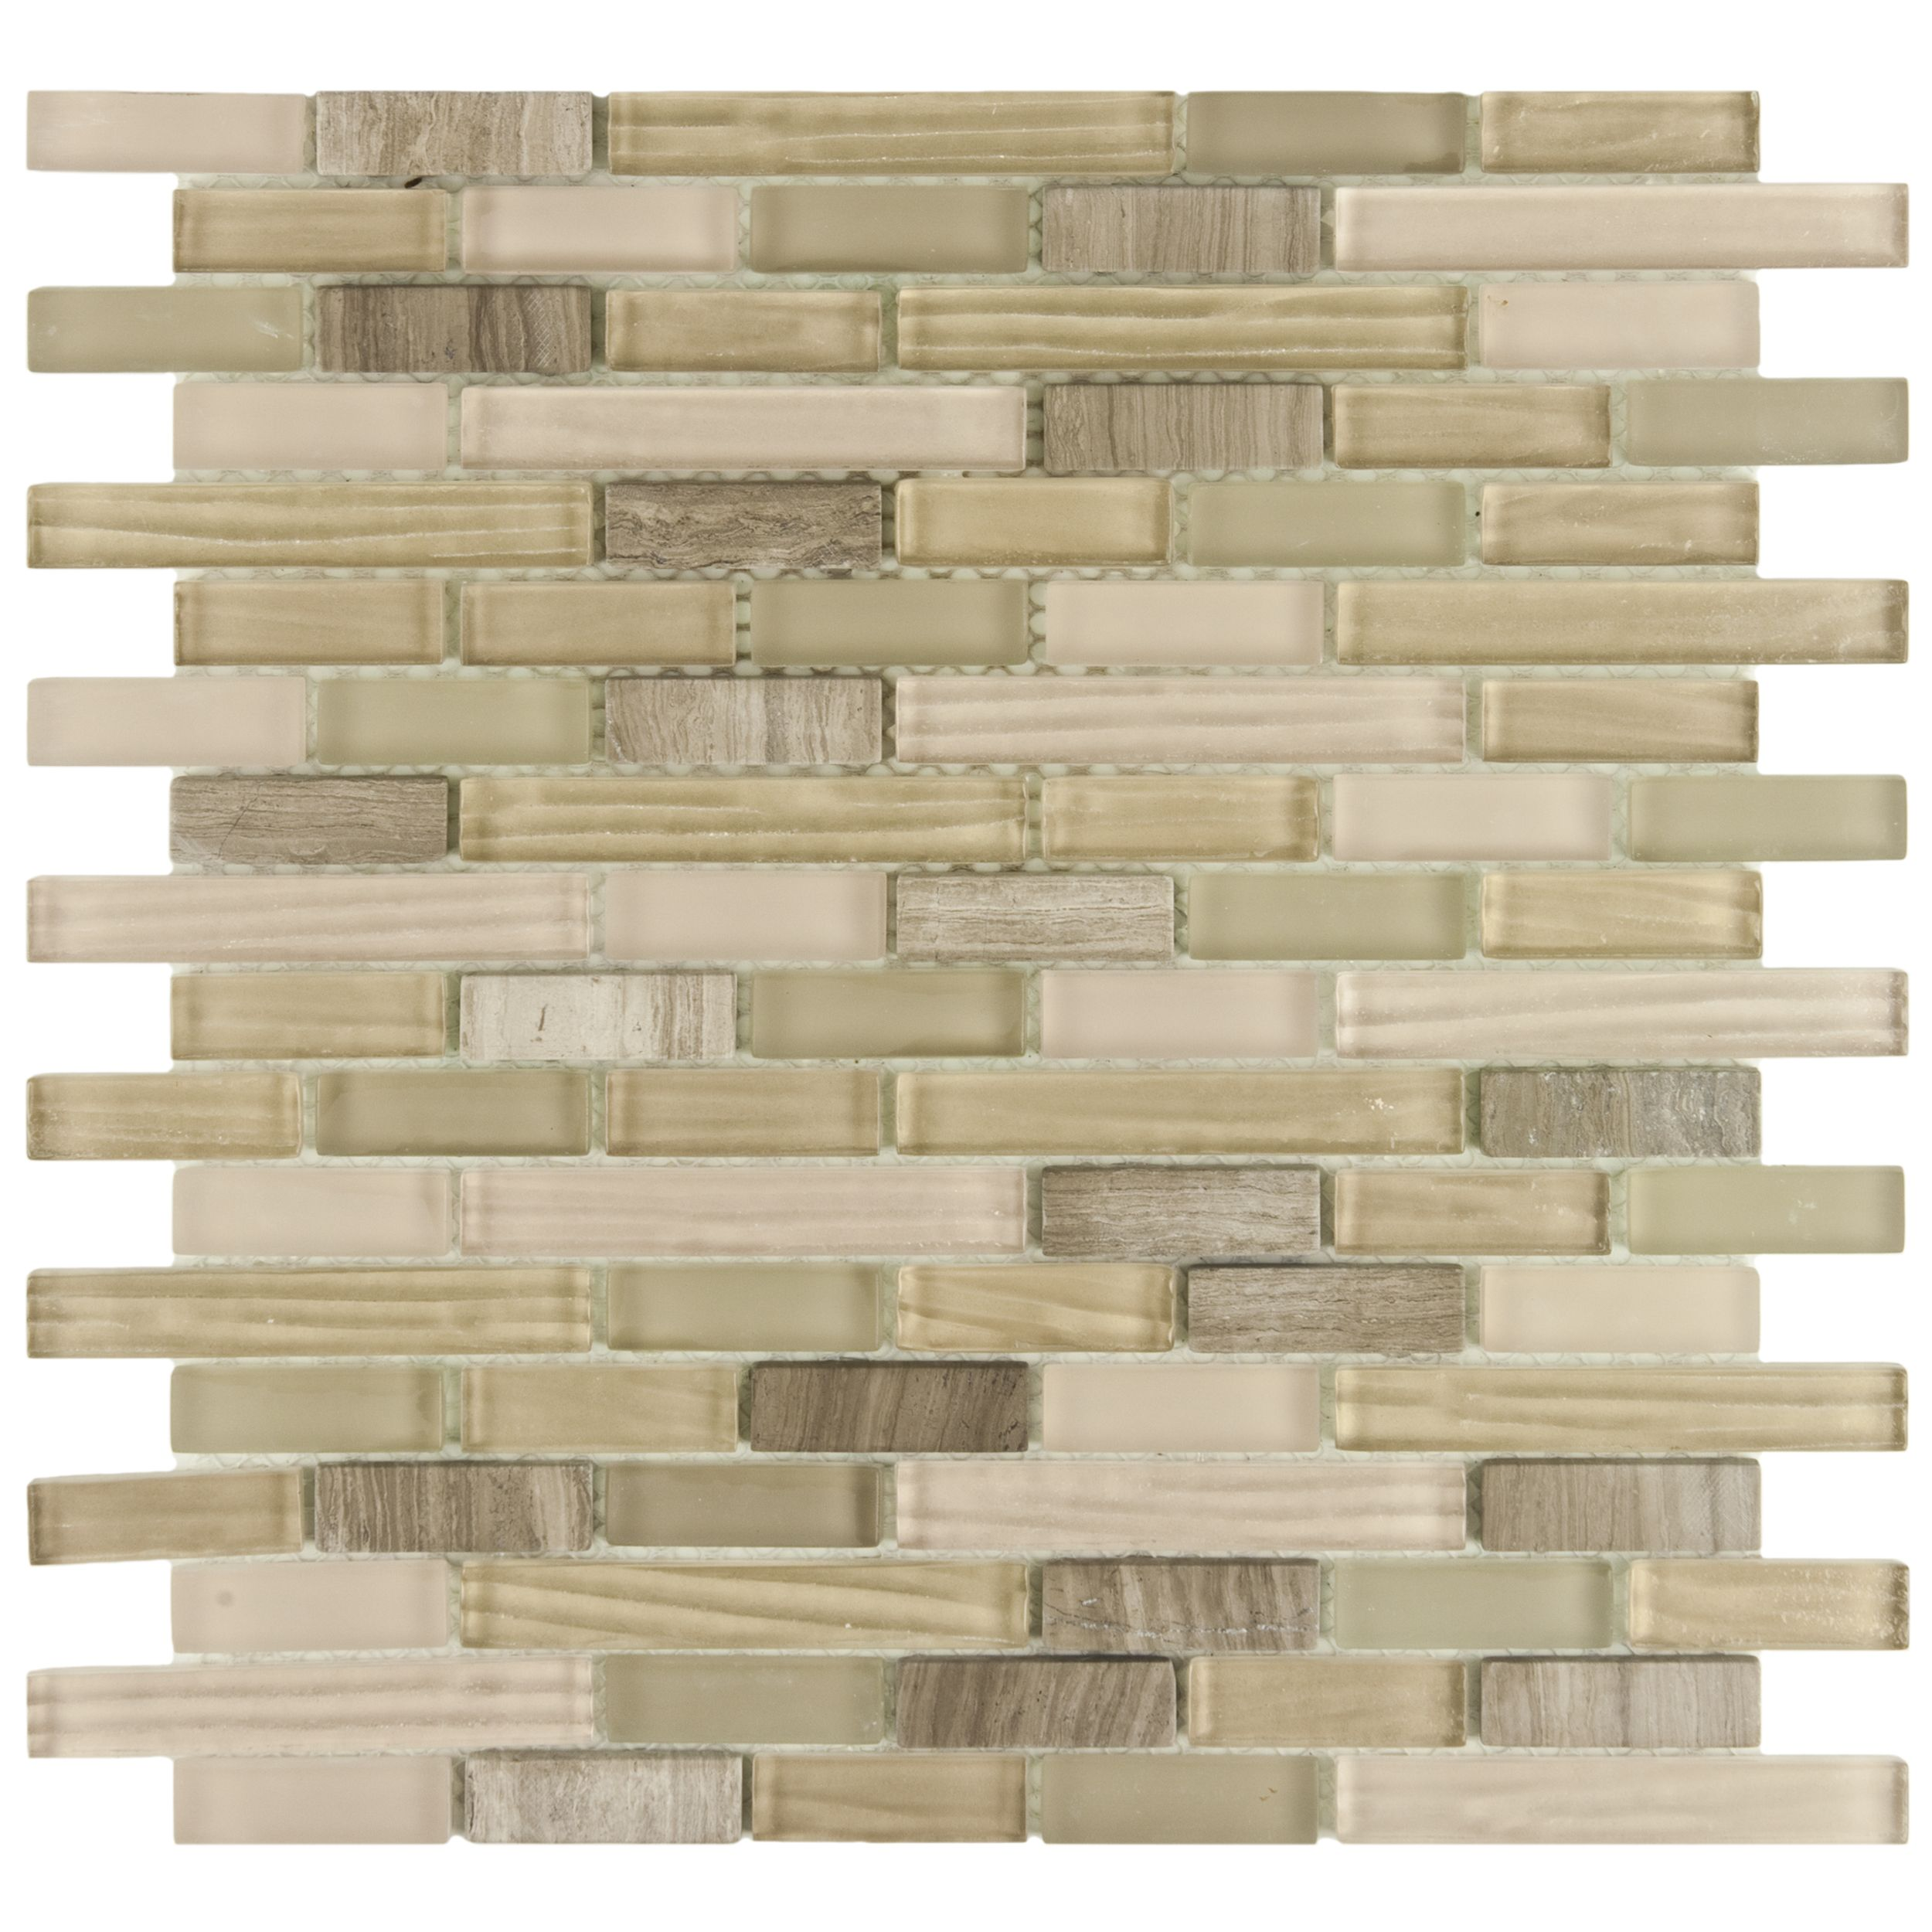 This Neutral Stone And Glass Mosaic By Somertile Looks